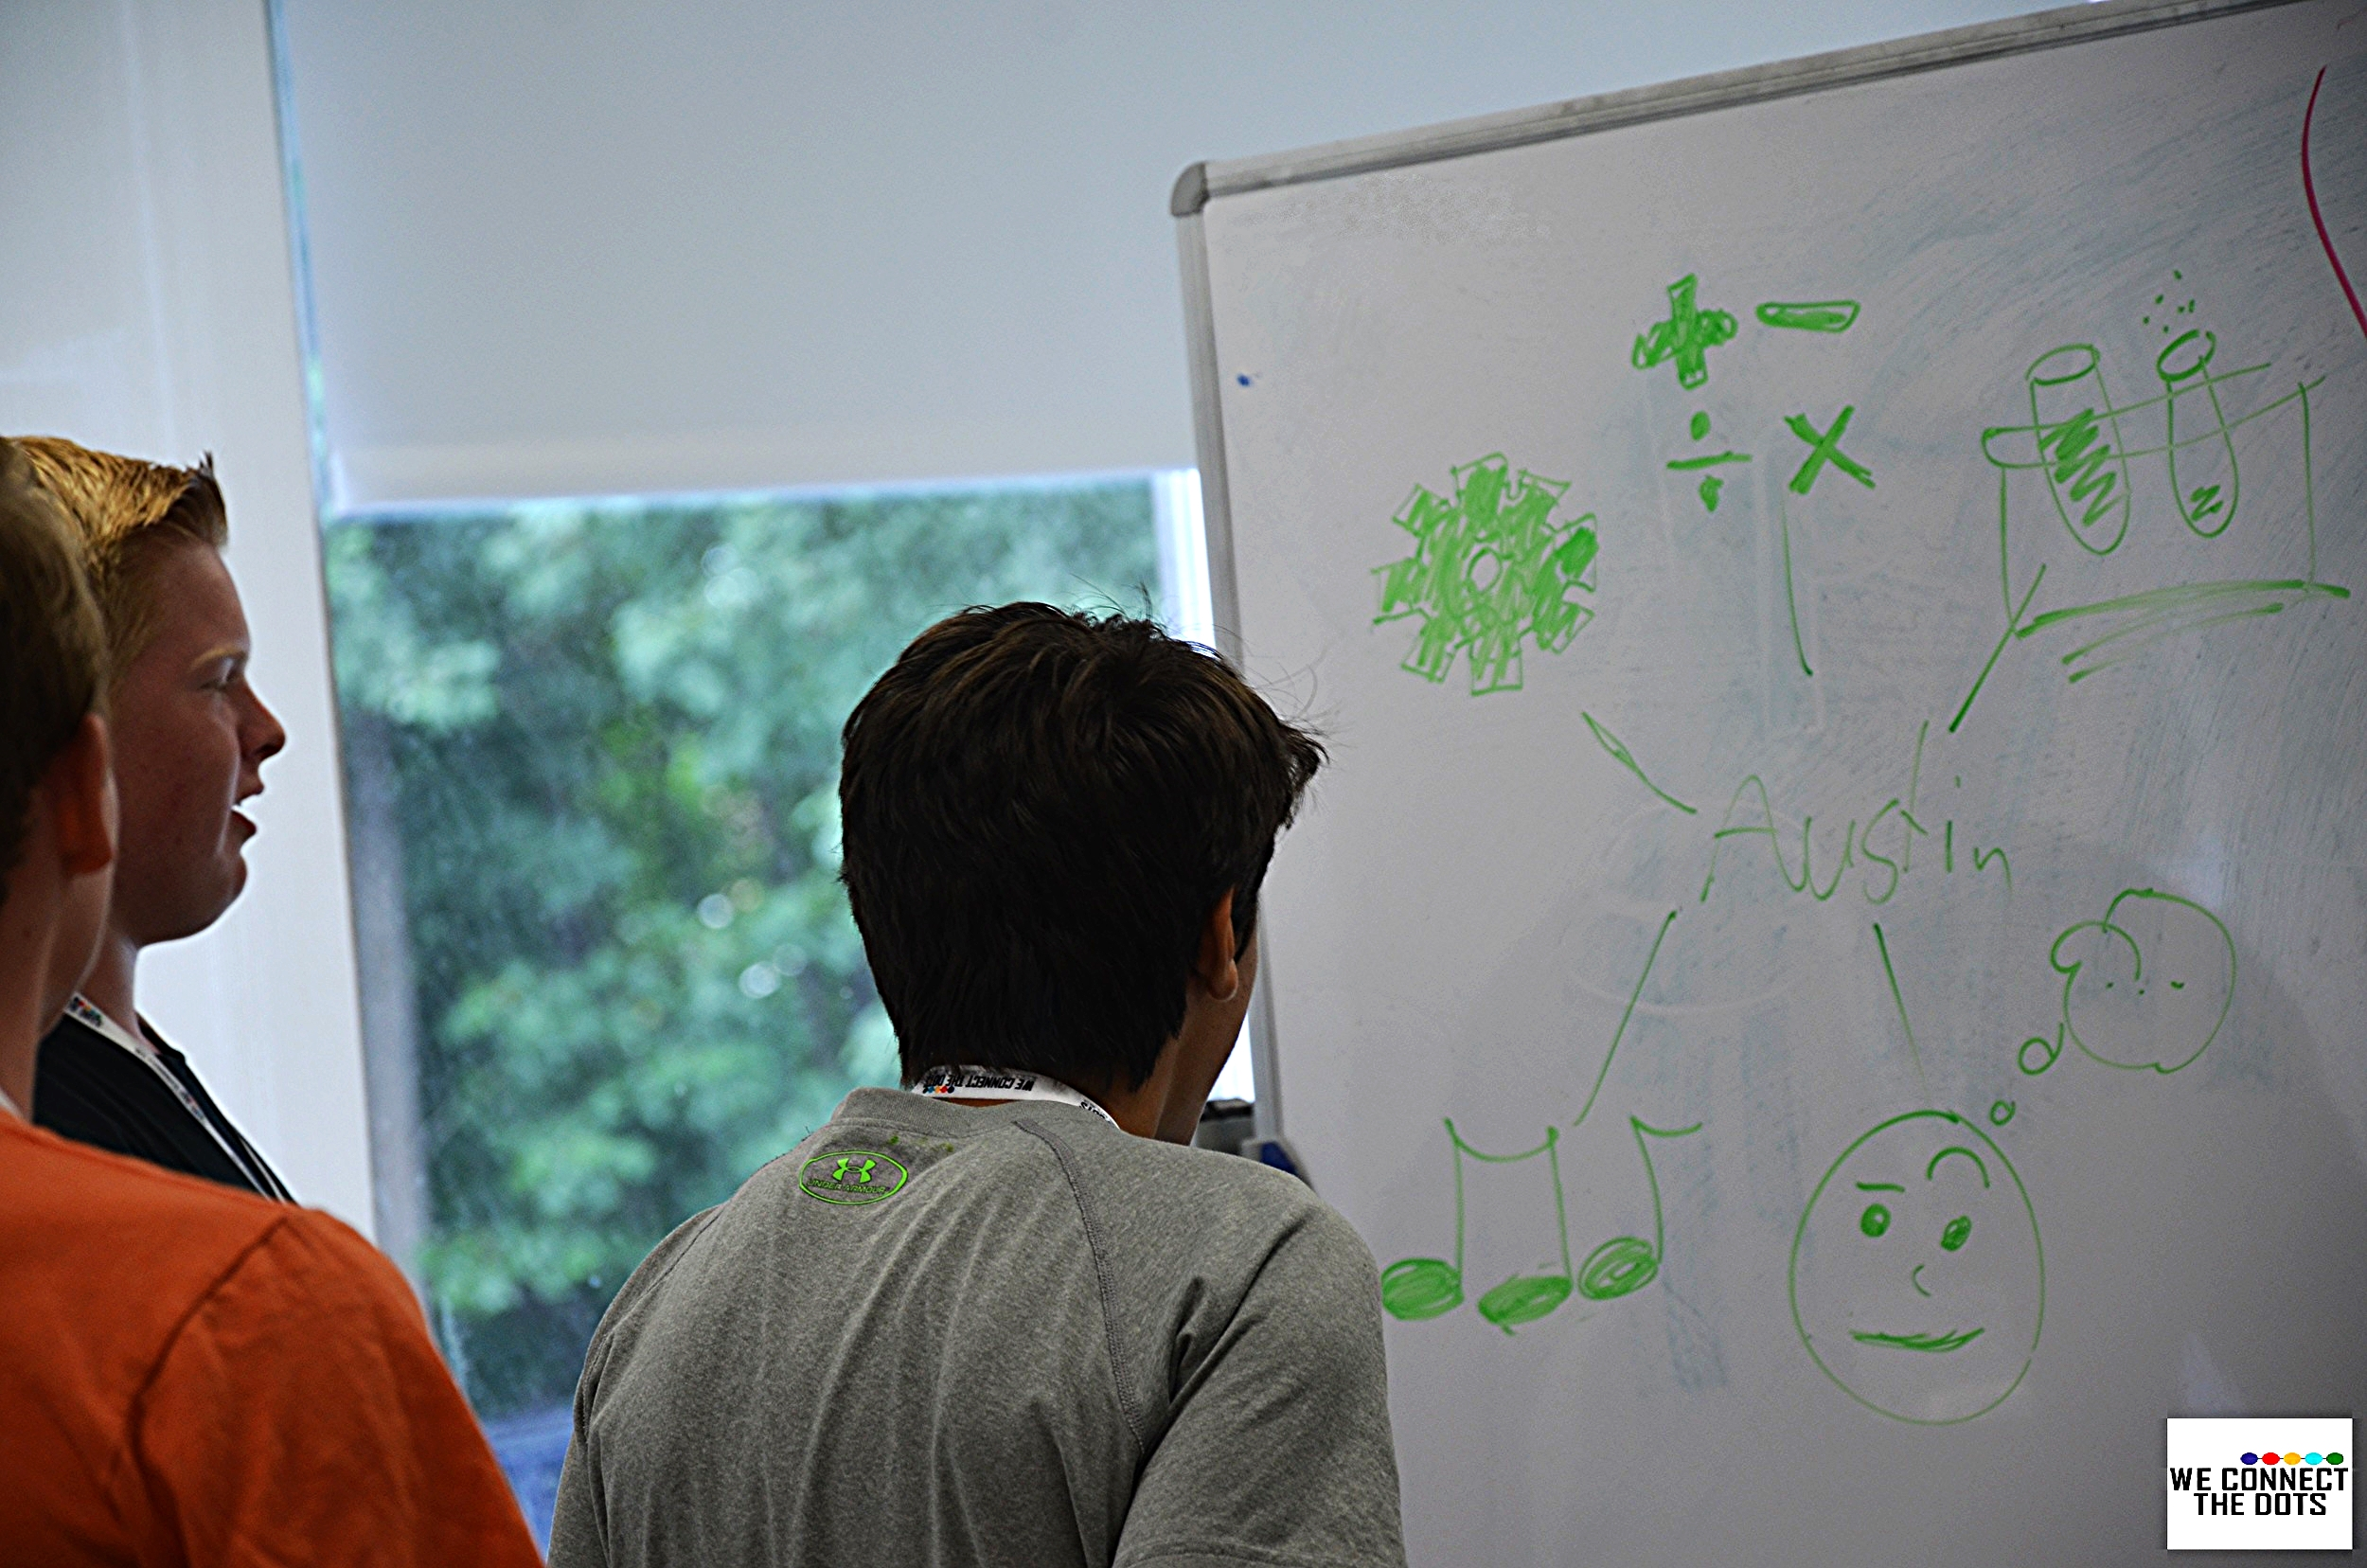 Students complete their hand-drawn mind mapping exercise to introduce themselves to one another.